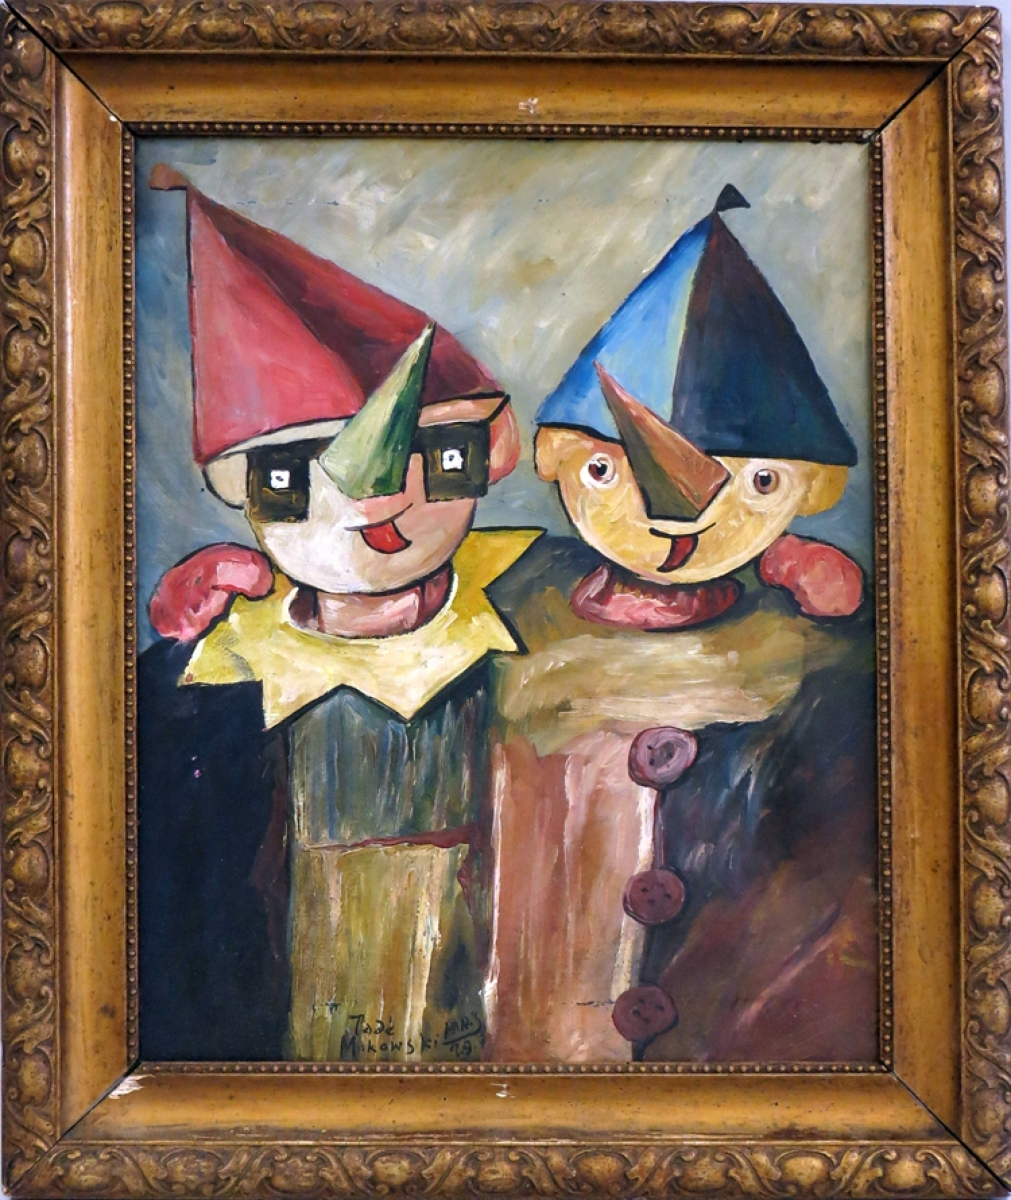 "Scenes of carnivals and children were among the favorite subjects of Polish artist Tadeusz Makowski. This one with two children was titled ""La petite famille"" and reached $8,400."